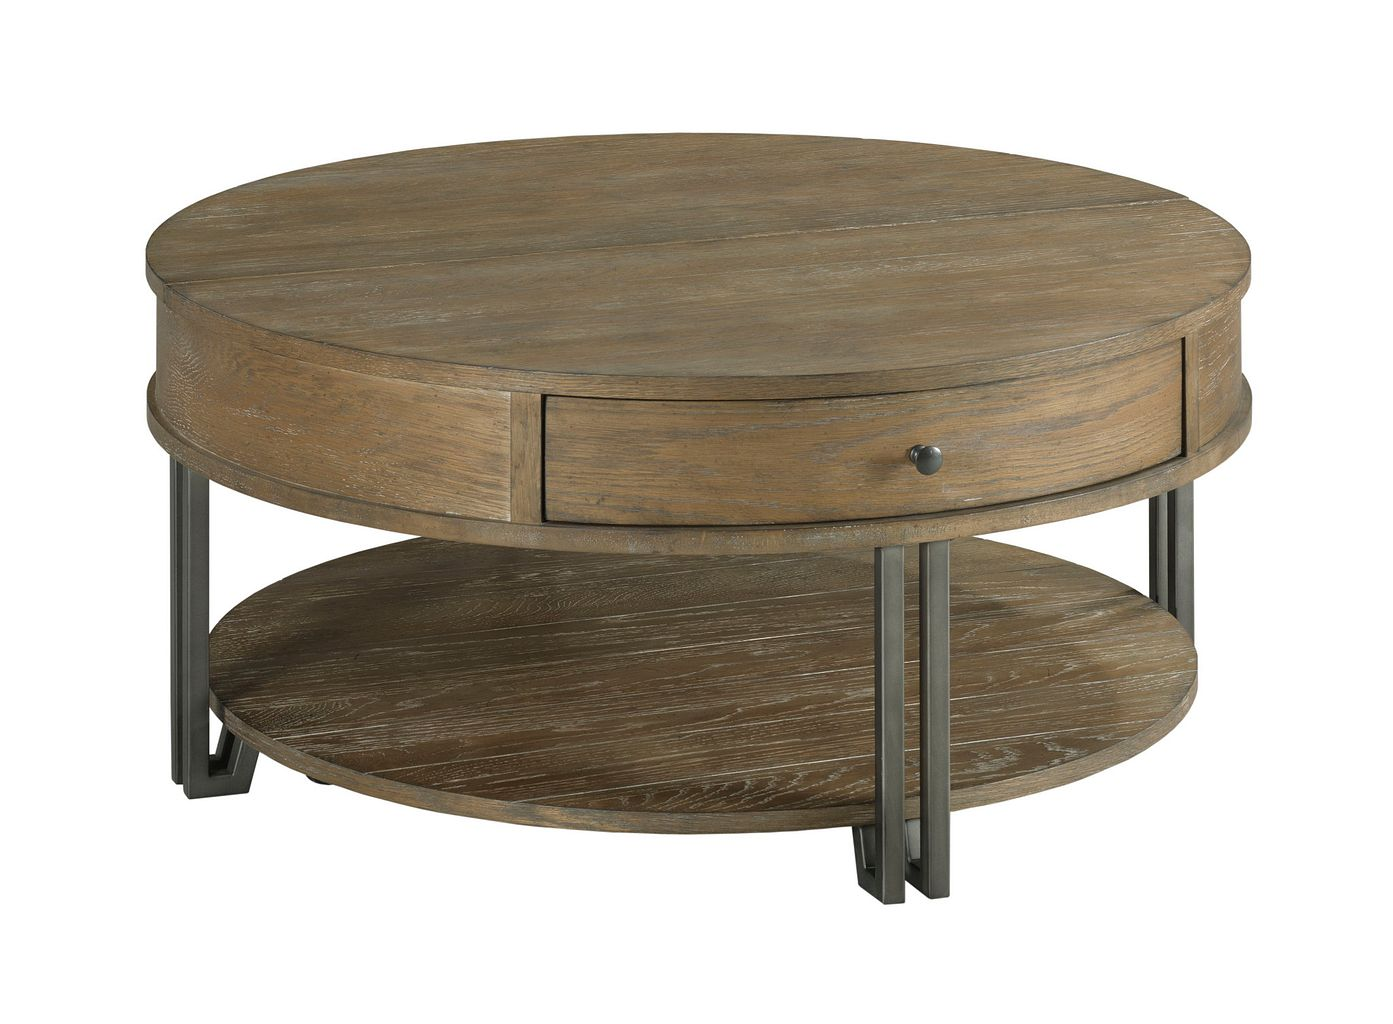 Saddletree Round Lift Top Coffee Table by Hammary at Jacksonville Furniture Mart